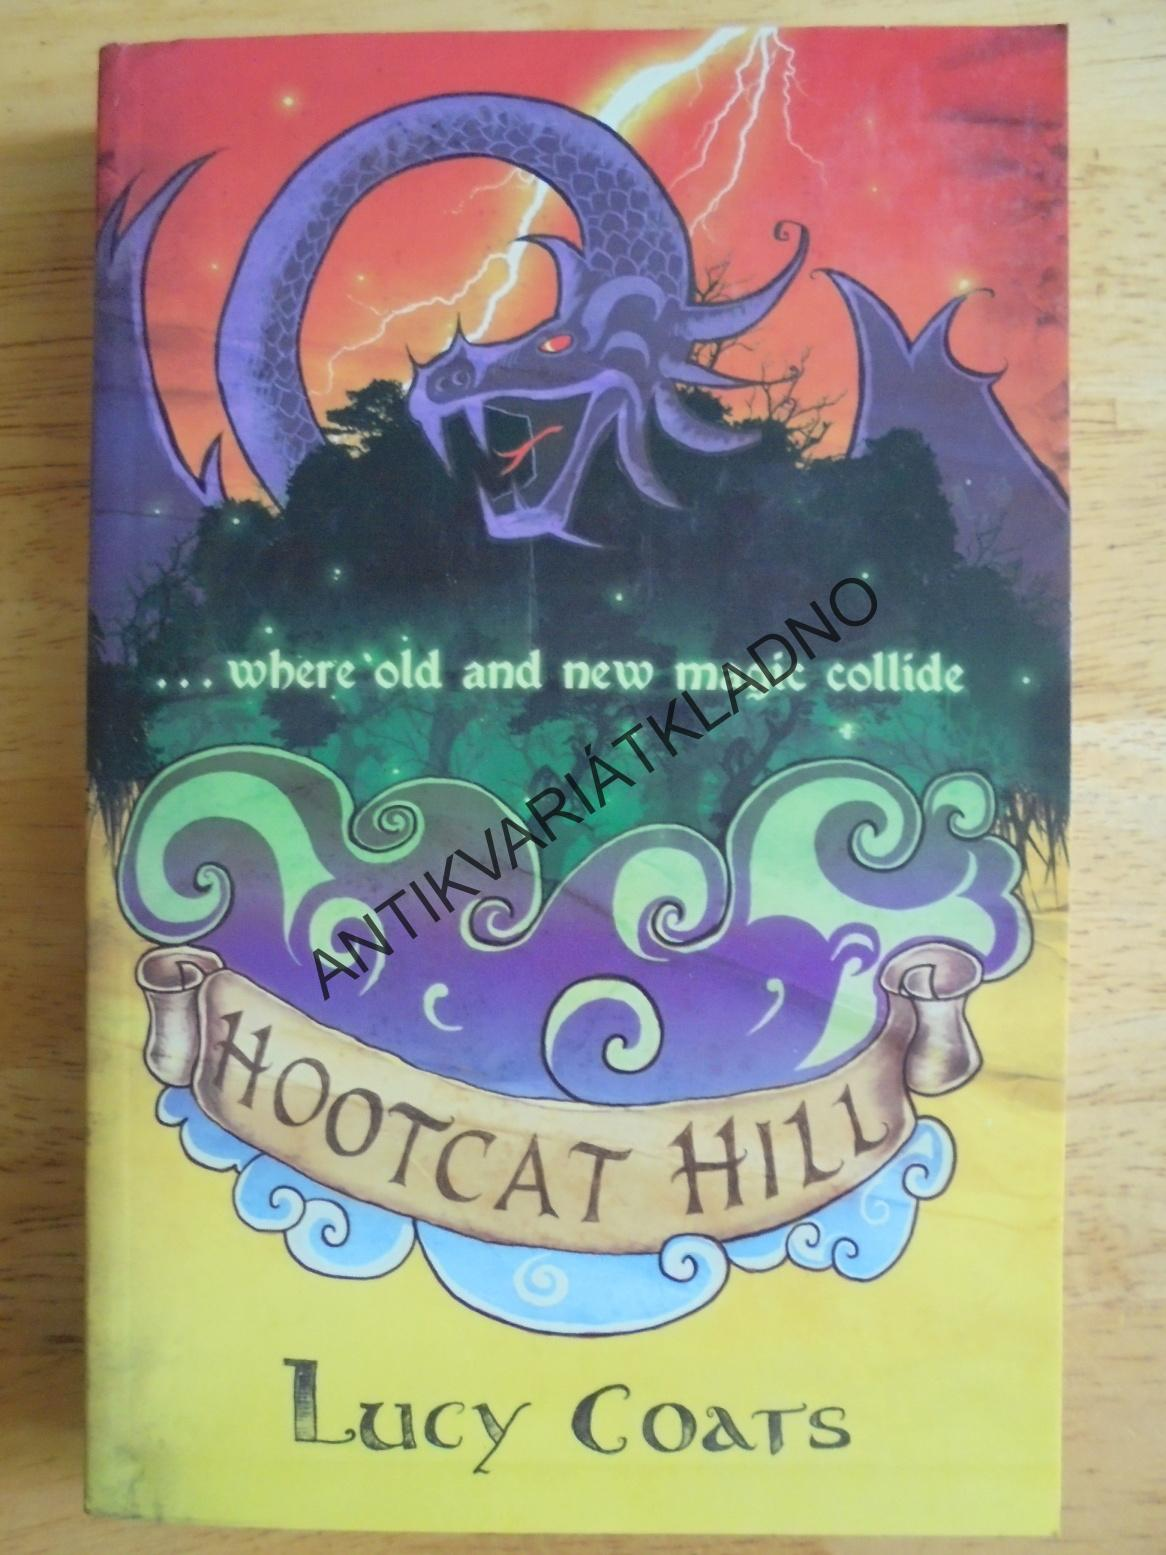 HOOTCAT HILL, LUCY COATS, ANGLICKY